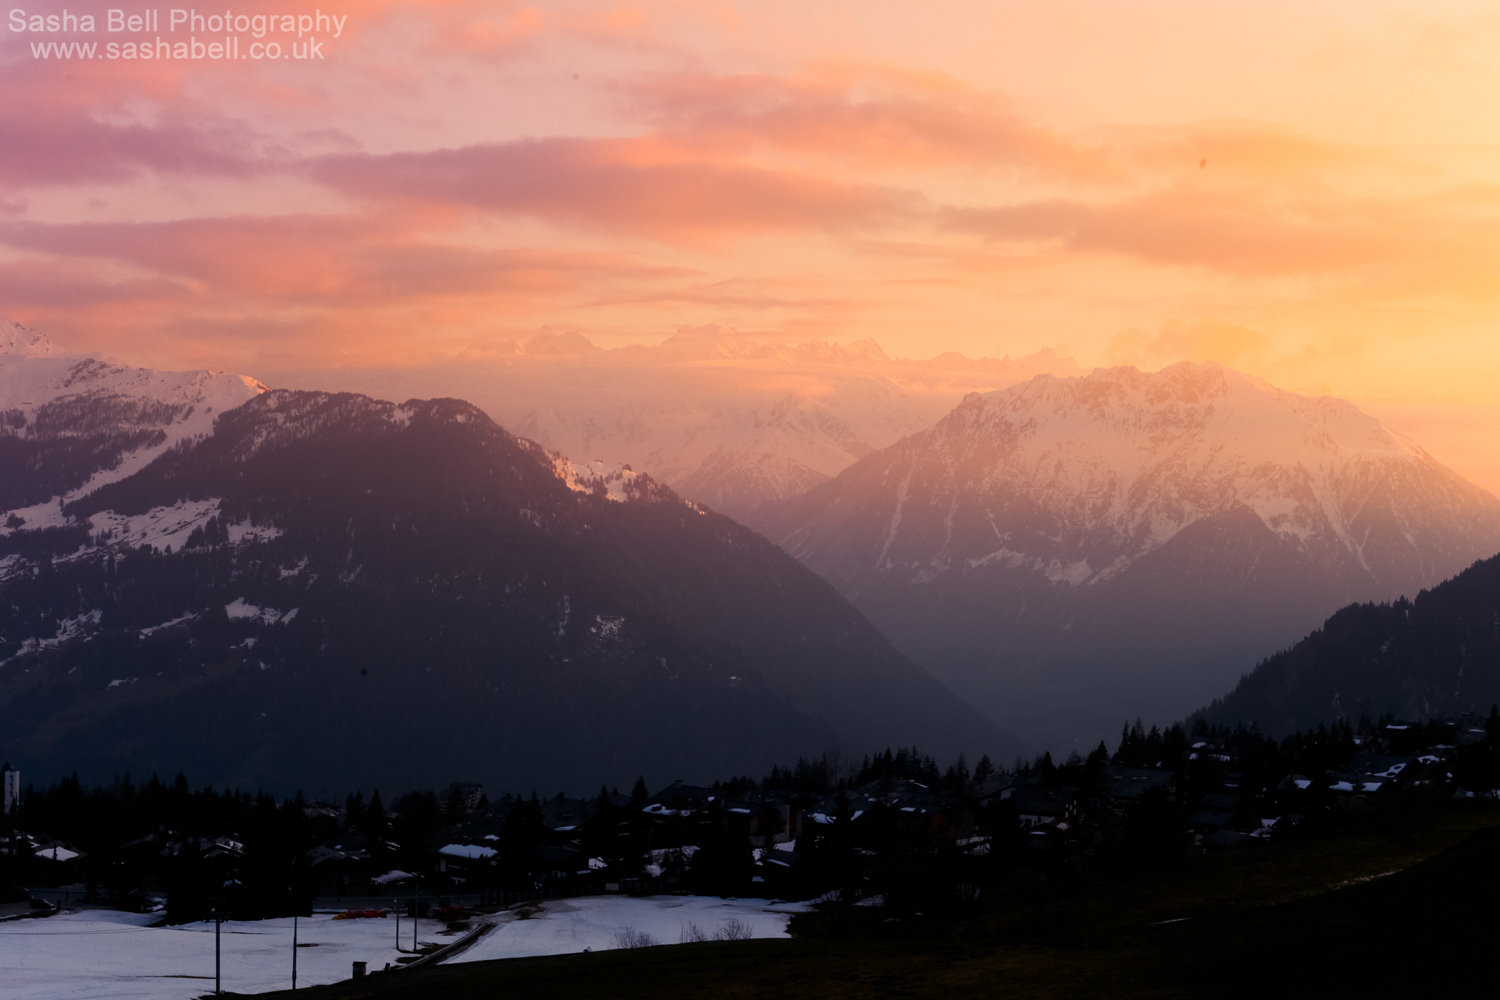 Sunset Over the Mountains – Day 212/365